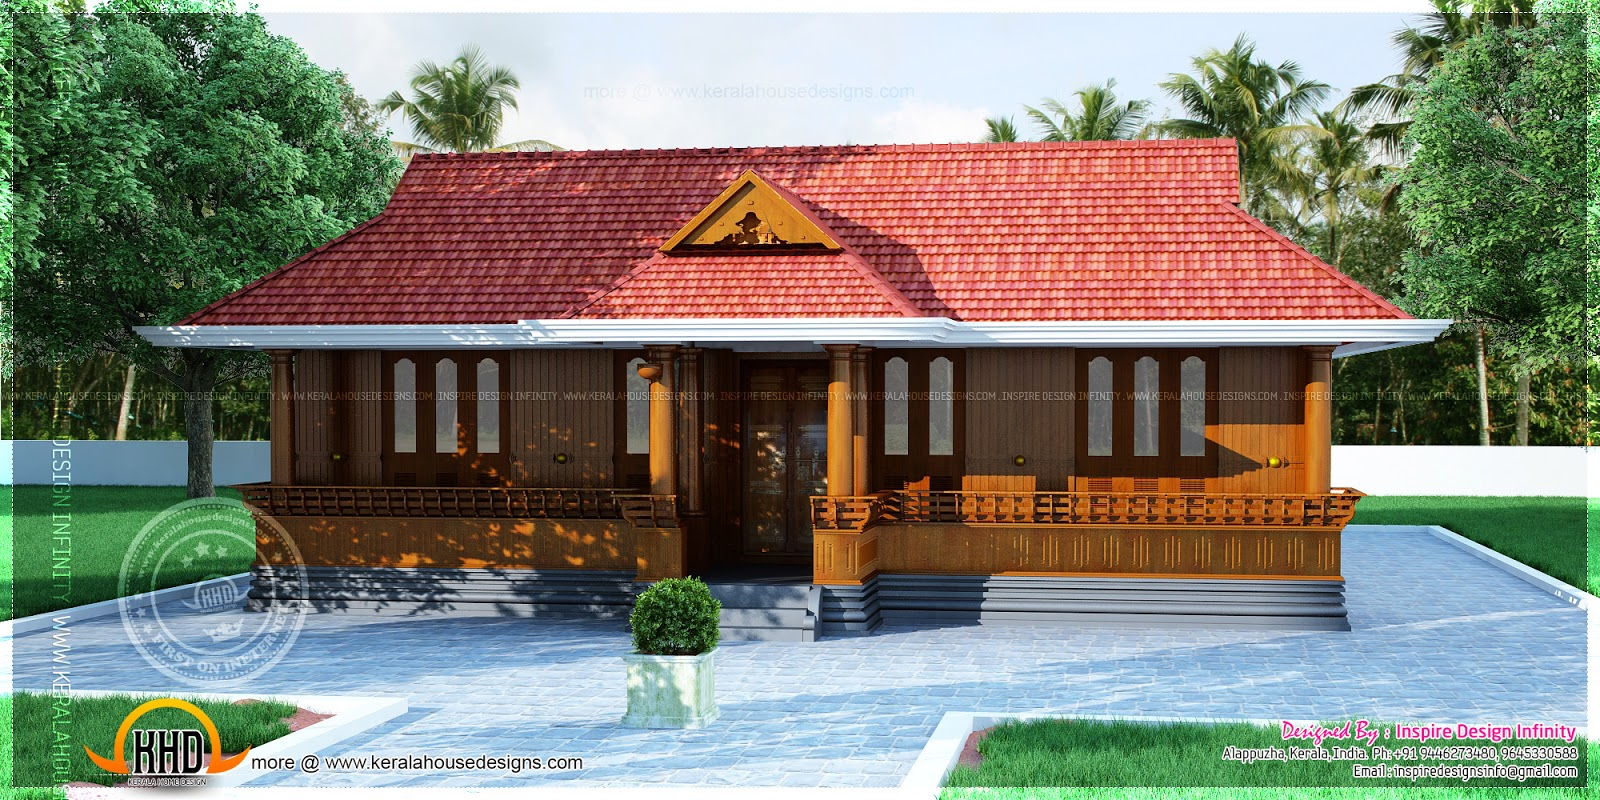 Nadumuttam veedu joy studio design gallery best design for Kerala houses designs